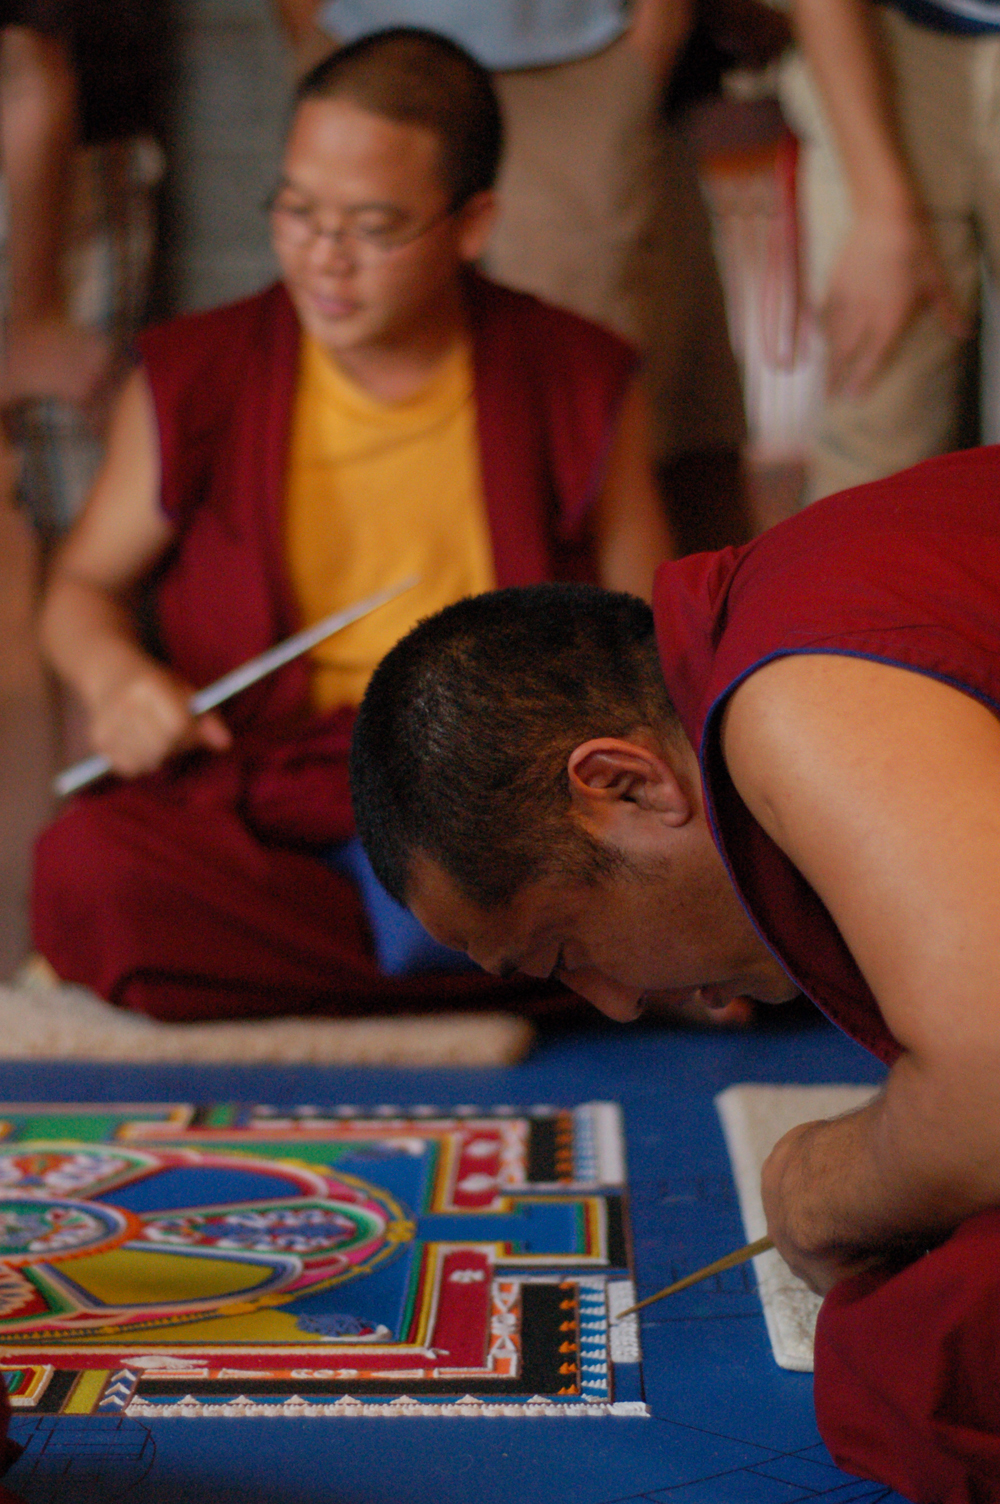 Monks from the Drepong Gomang Monastery in India create a mandala of compassion during the Sacred Arts Festival in 2009.